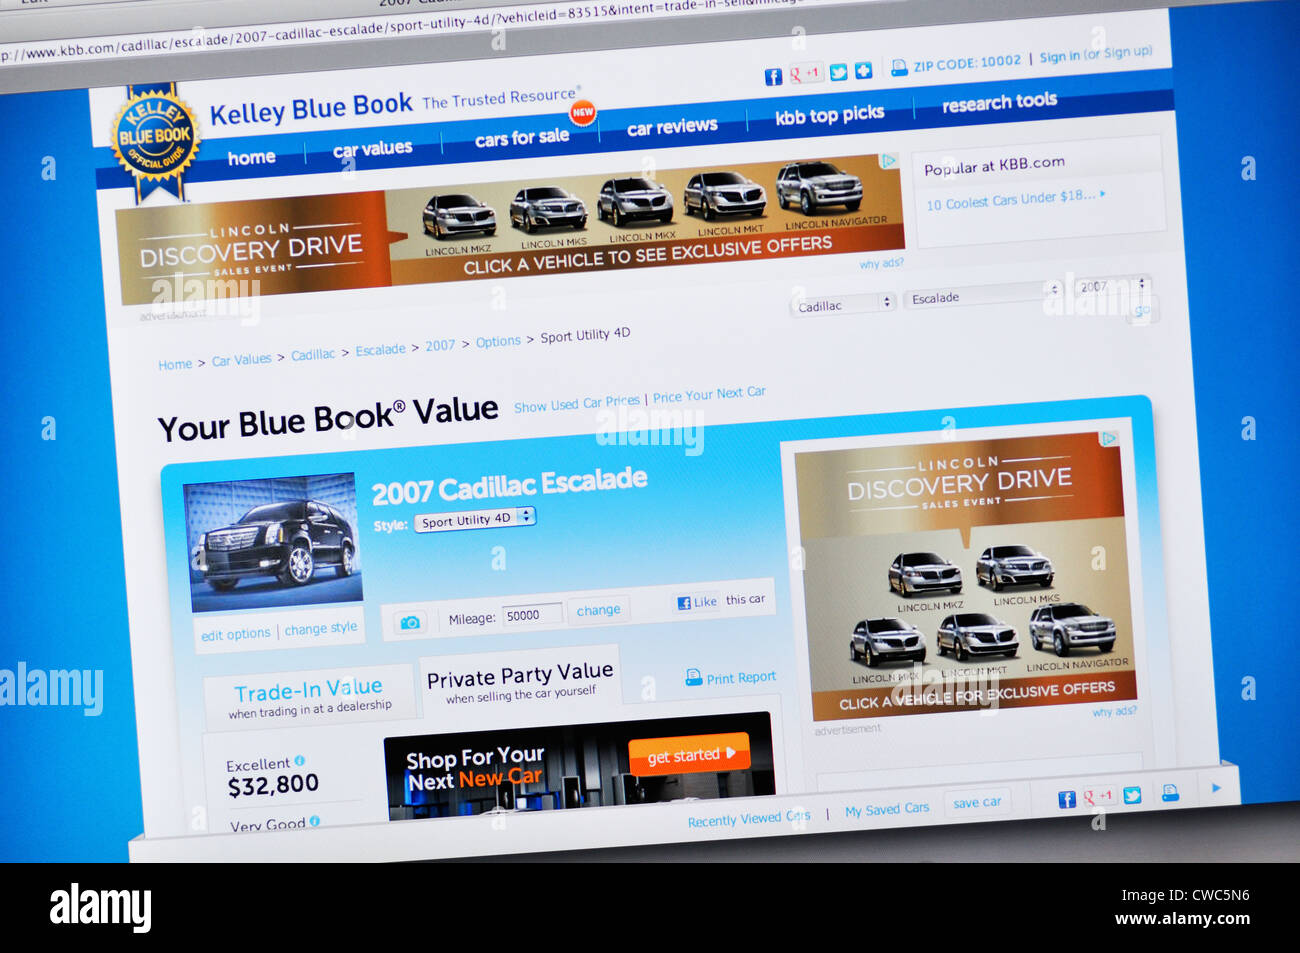 Kelly Blue Book Website Car Valuation Stock Photo 50055074 Alamy